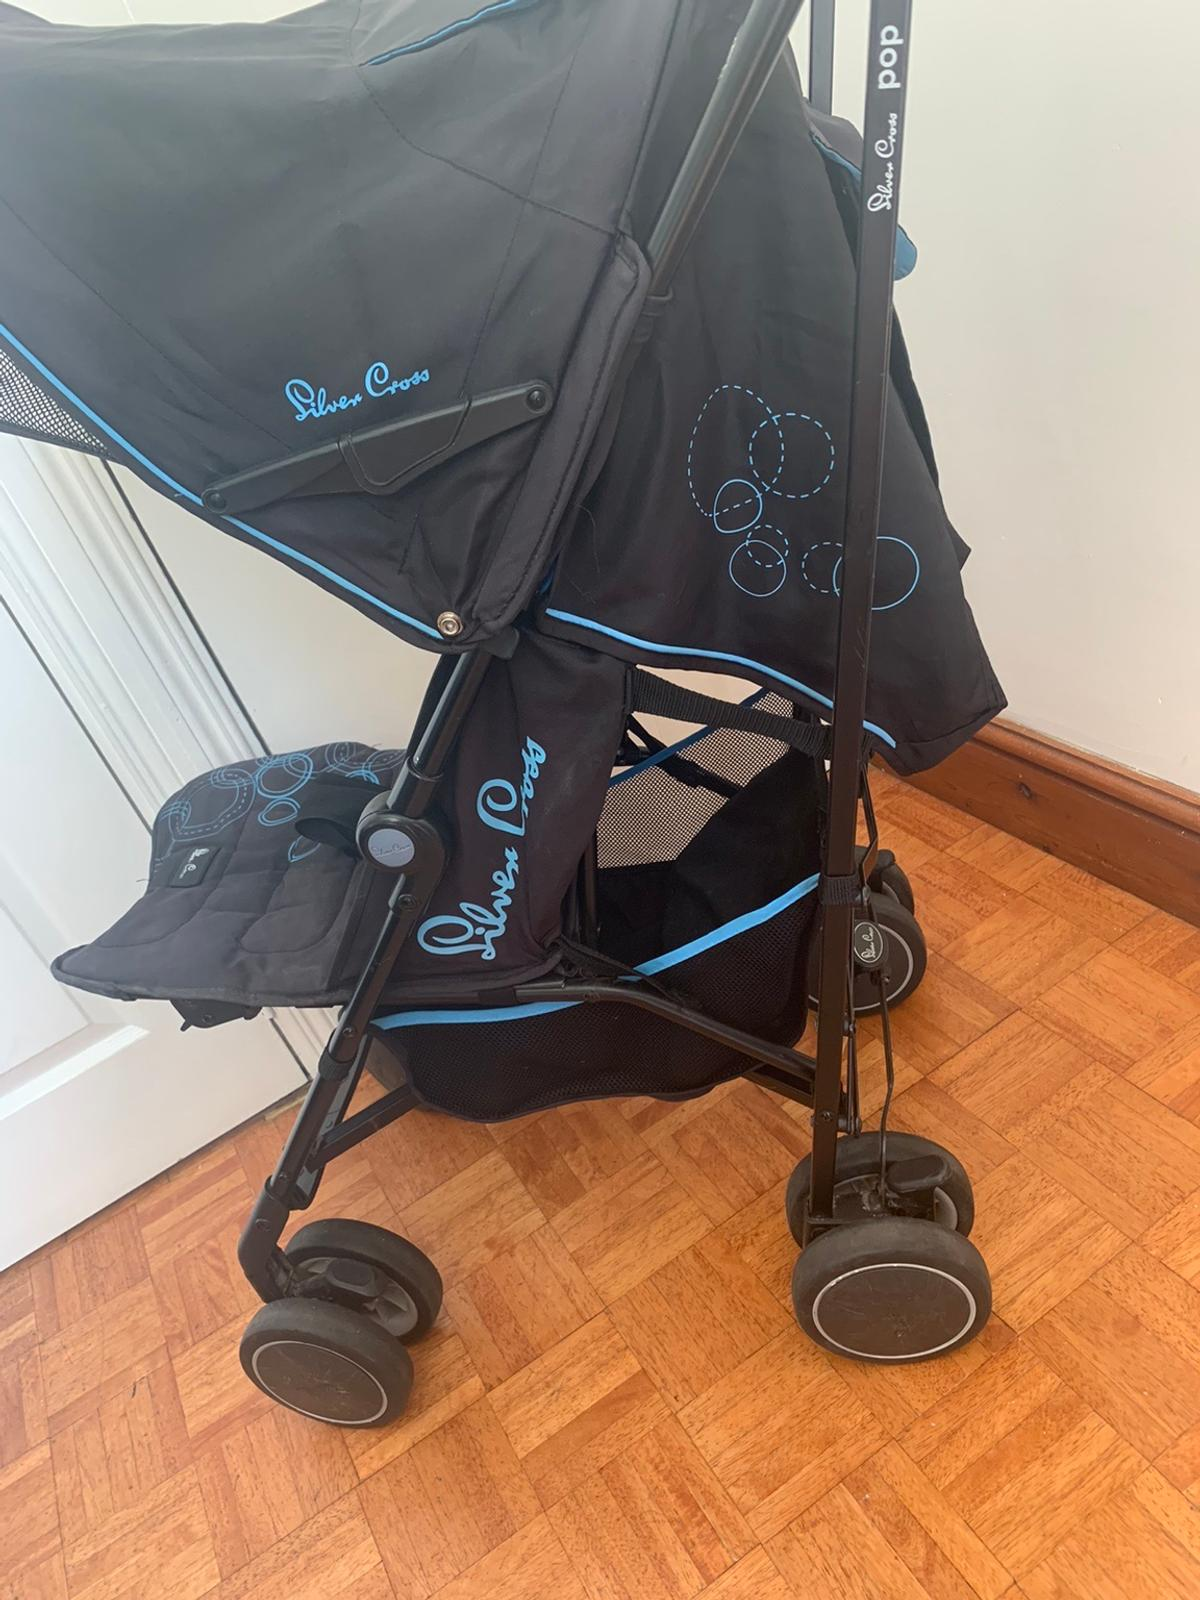 Silver Cross Pop stroller – Blue bubbles pushchair  Collection from Wanstead. Social distancing practiced on collection.  In good used condition. No raincover.  The Silver Cross Pop stroller is suitable from birth, has a remarkable lightweight construction with compact umbrella fold, lockable swivel wheels and features a UPF 50+ hood with a pop-out sun visor.  – Suitable from birth up to a maximum weight of 15kg – One-hand multiple position reclining seat – Lockable self-centering swivel wh